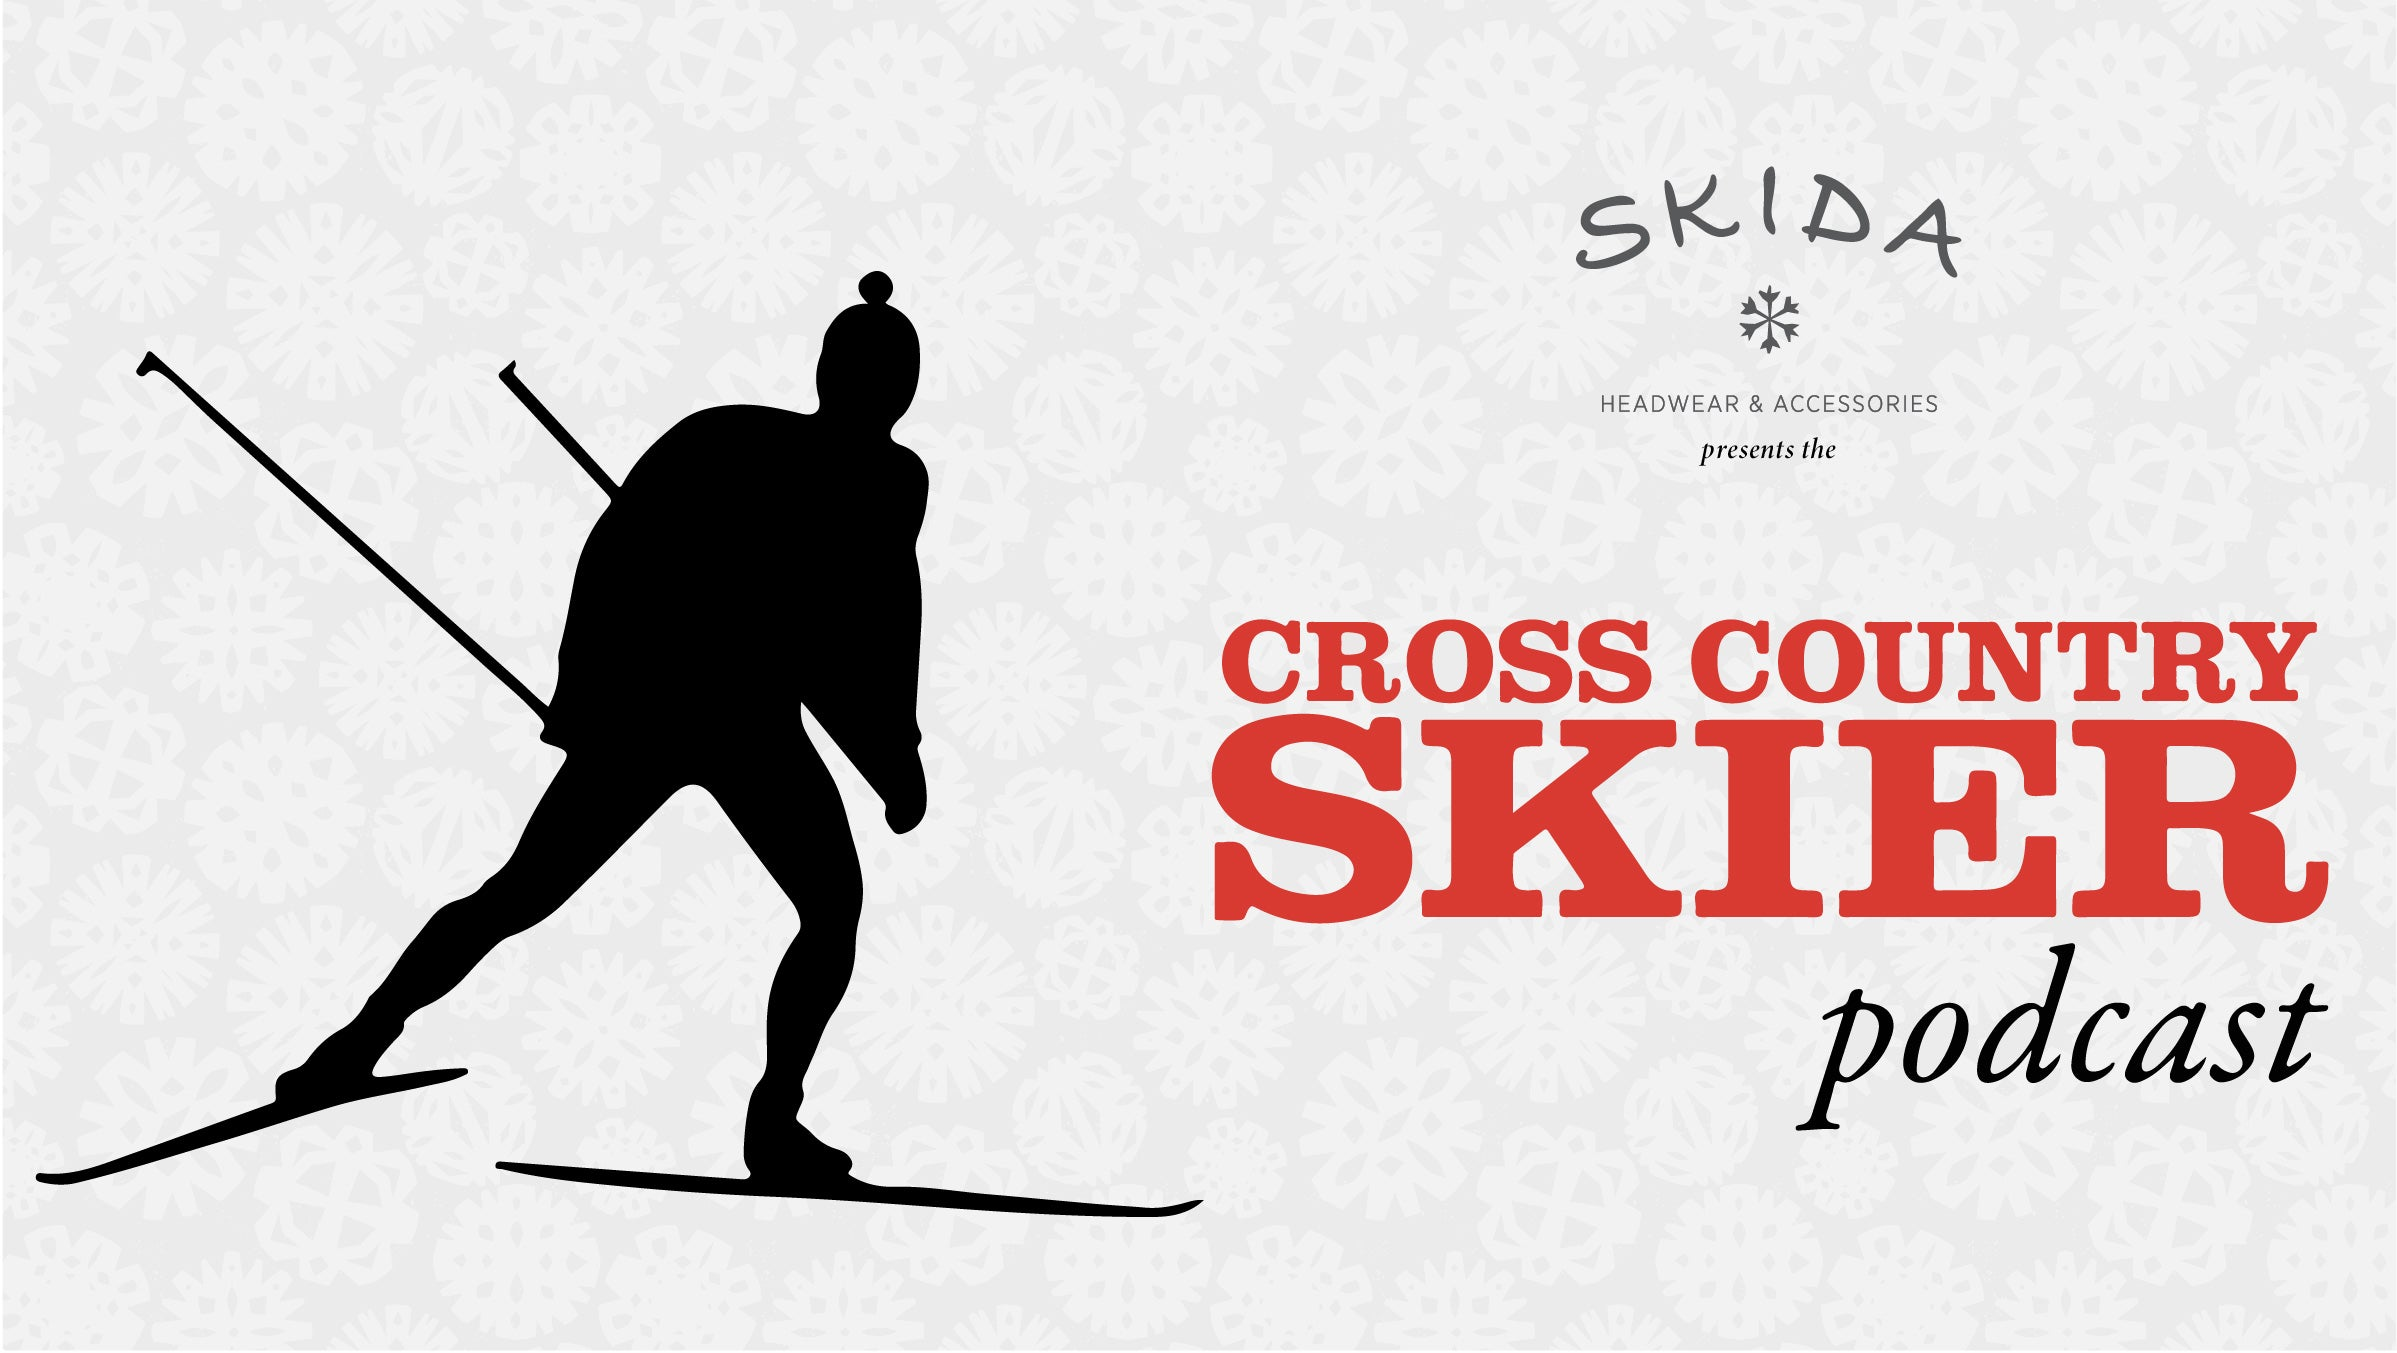 The Cross Country Skier Podcast